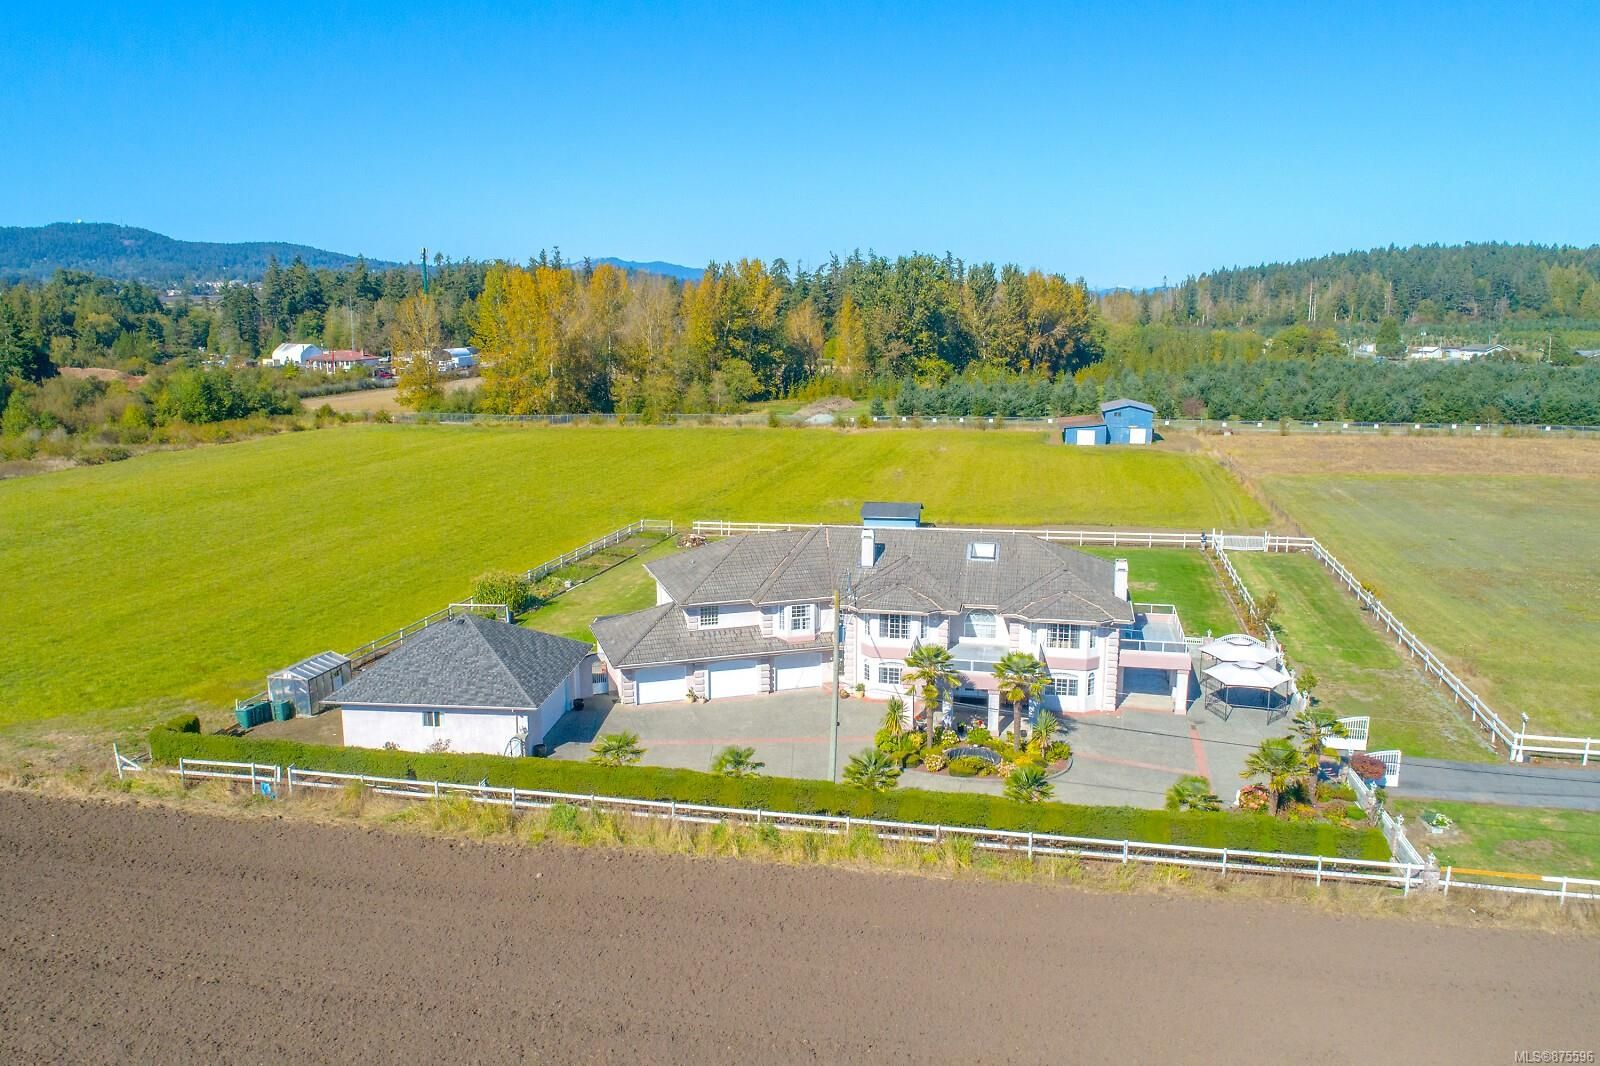 Main Photo: 7112 Puckle Rd in : CS Saanichton House for sale (Central Saanich)  : MLS®# 875596